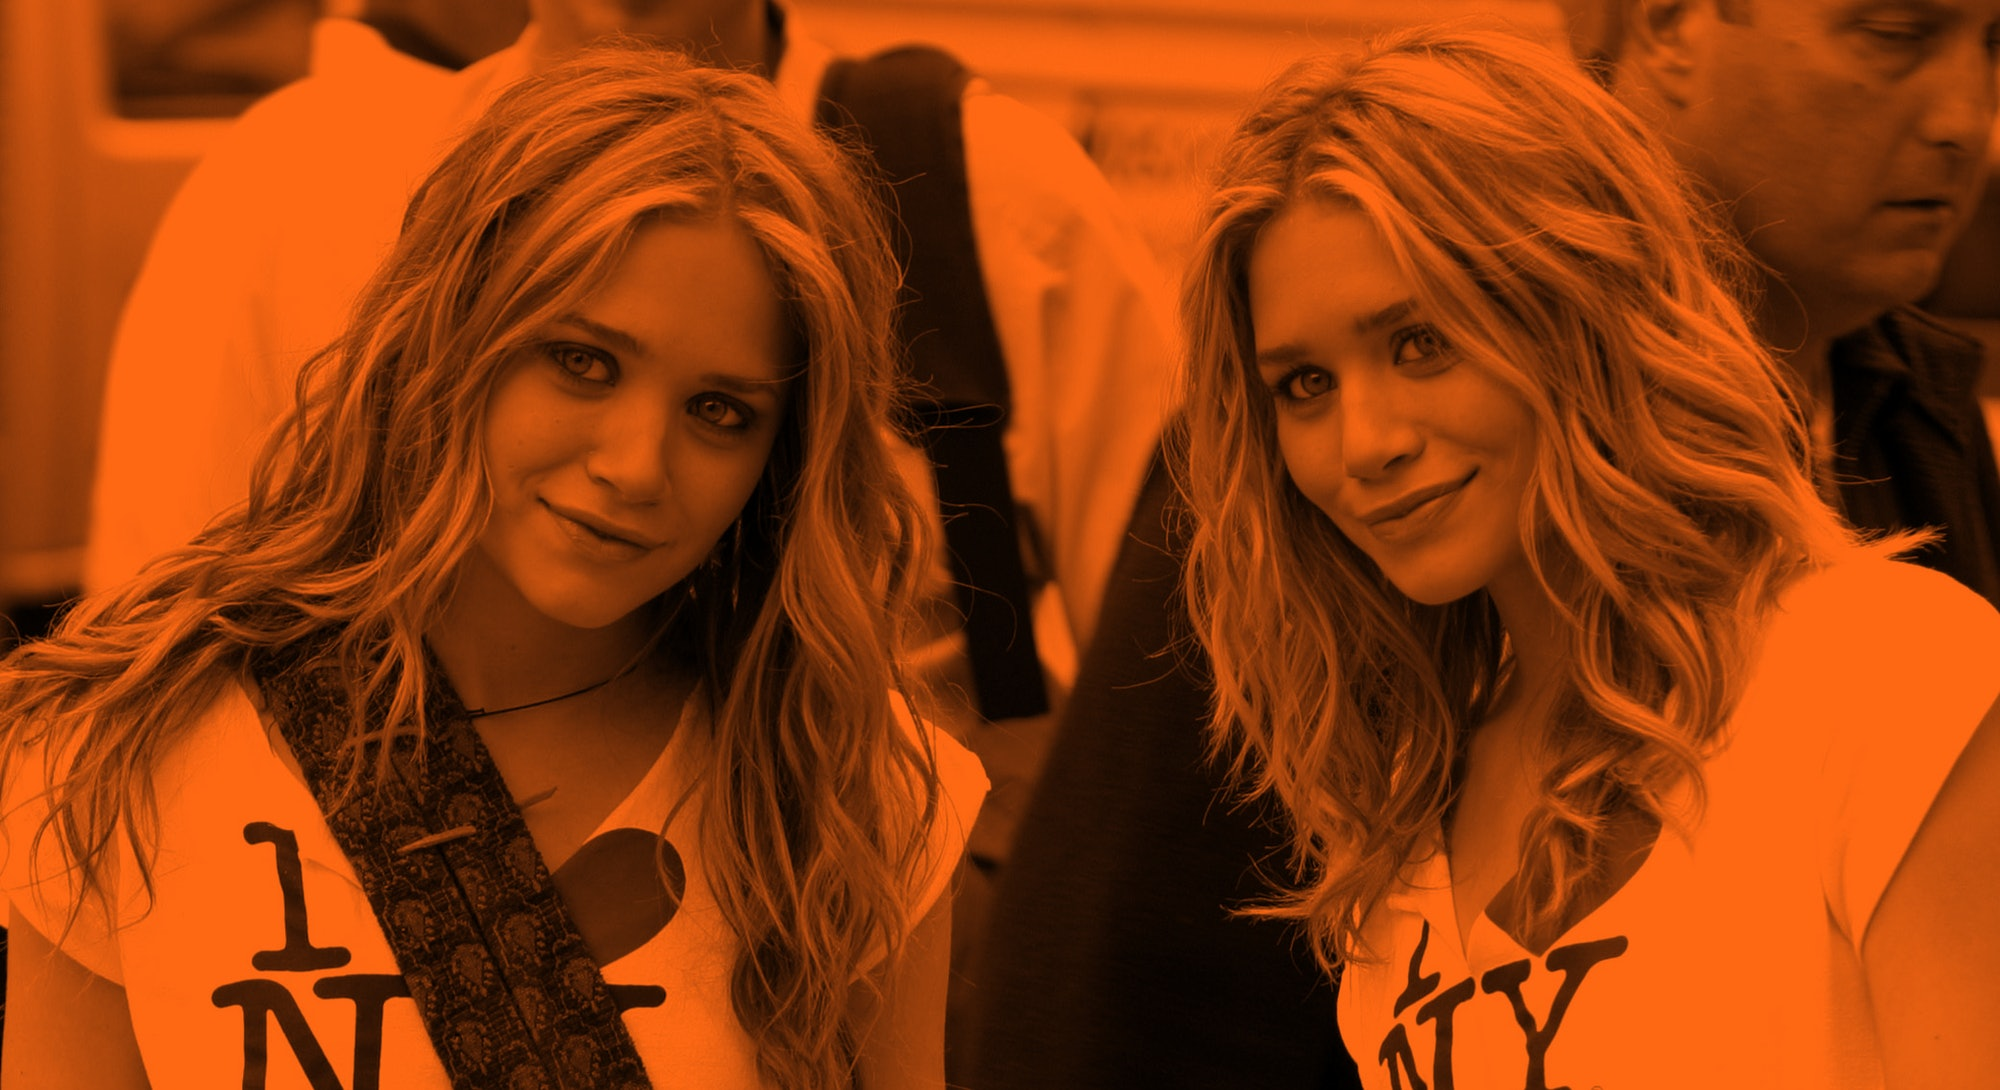 """Mary Kate Olsen and Ashley Olsen during """"New York Minute"""" on Location in Manhattan - October 9, 2003..."""